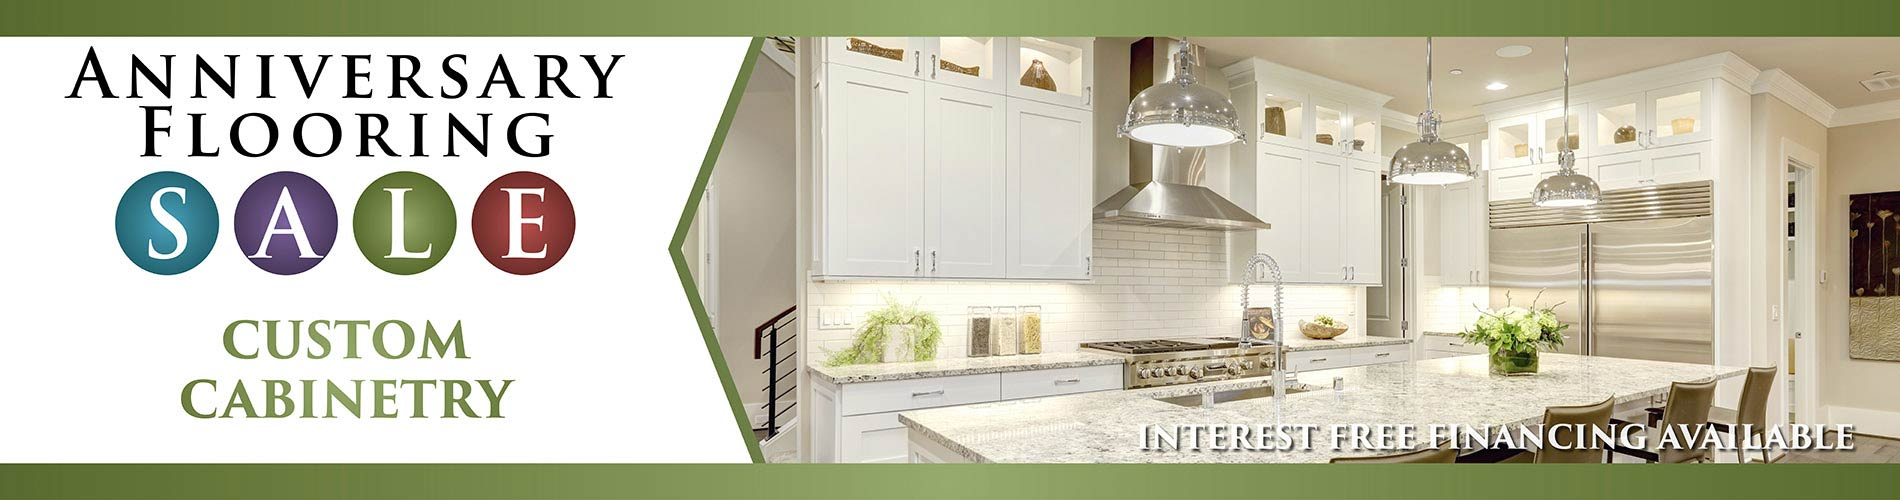 Custom Cabinetry Event - Interest Free Financing Available during our sale event at Erskine Interiors.